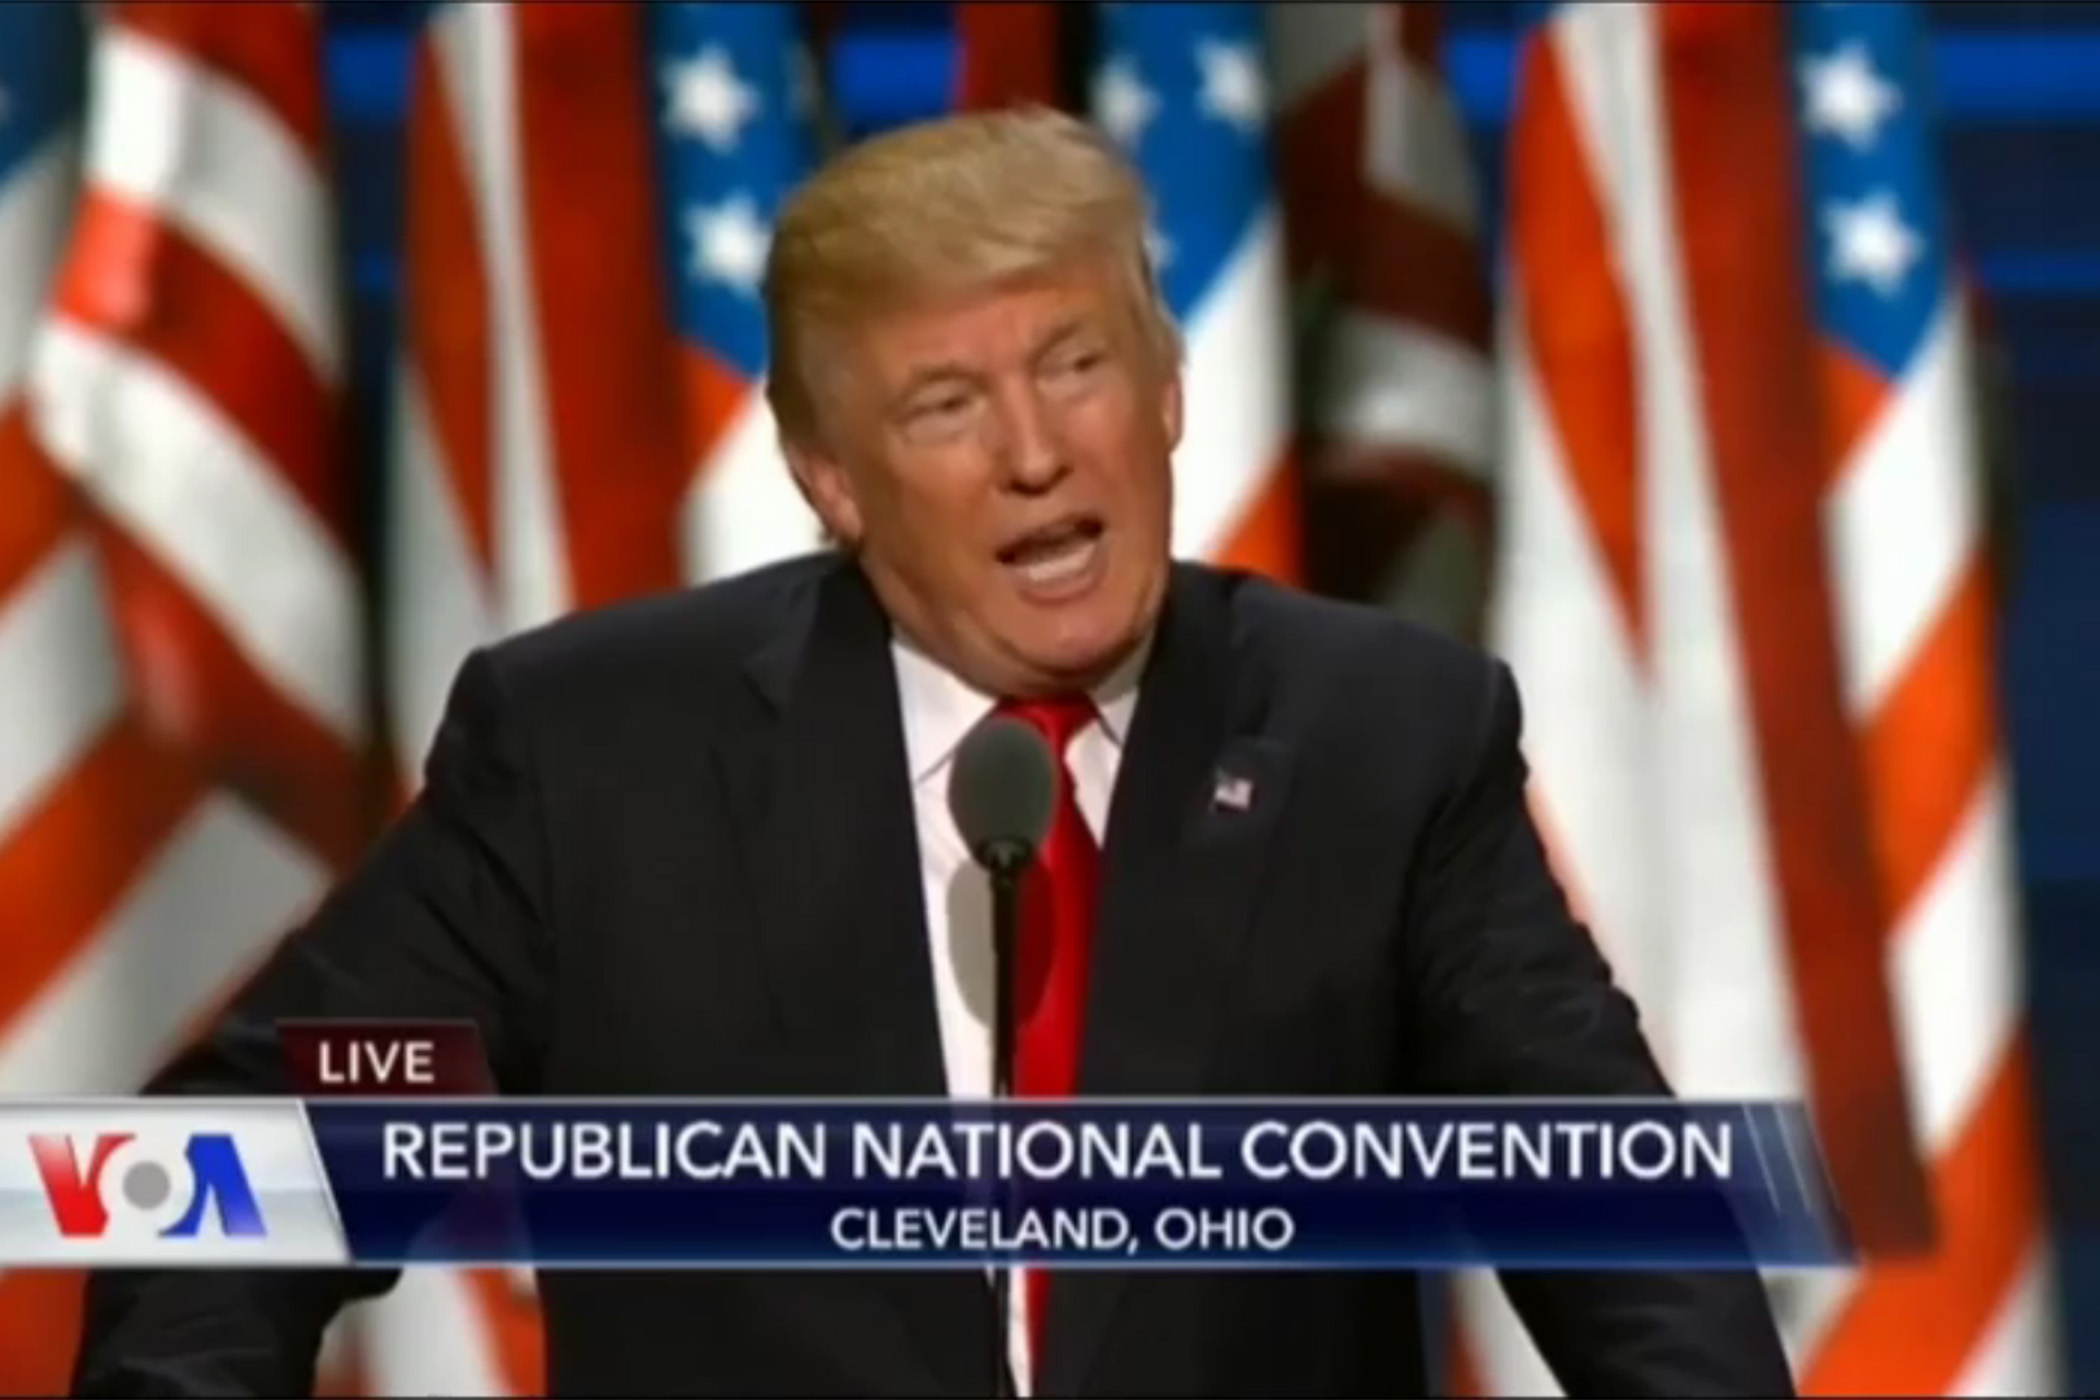 Donald Trump speaking in front of several American flags in the background